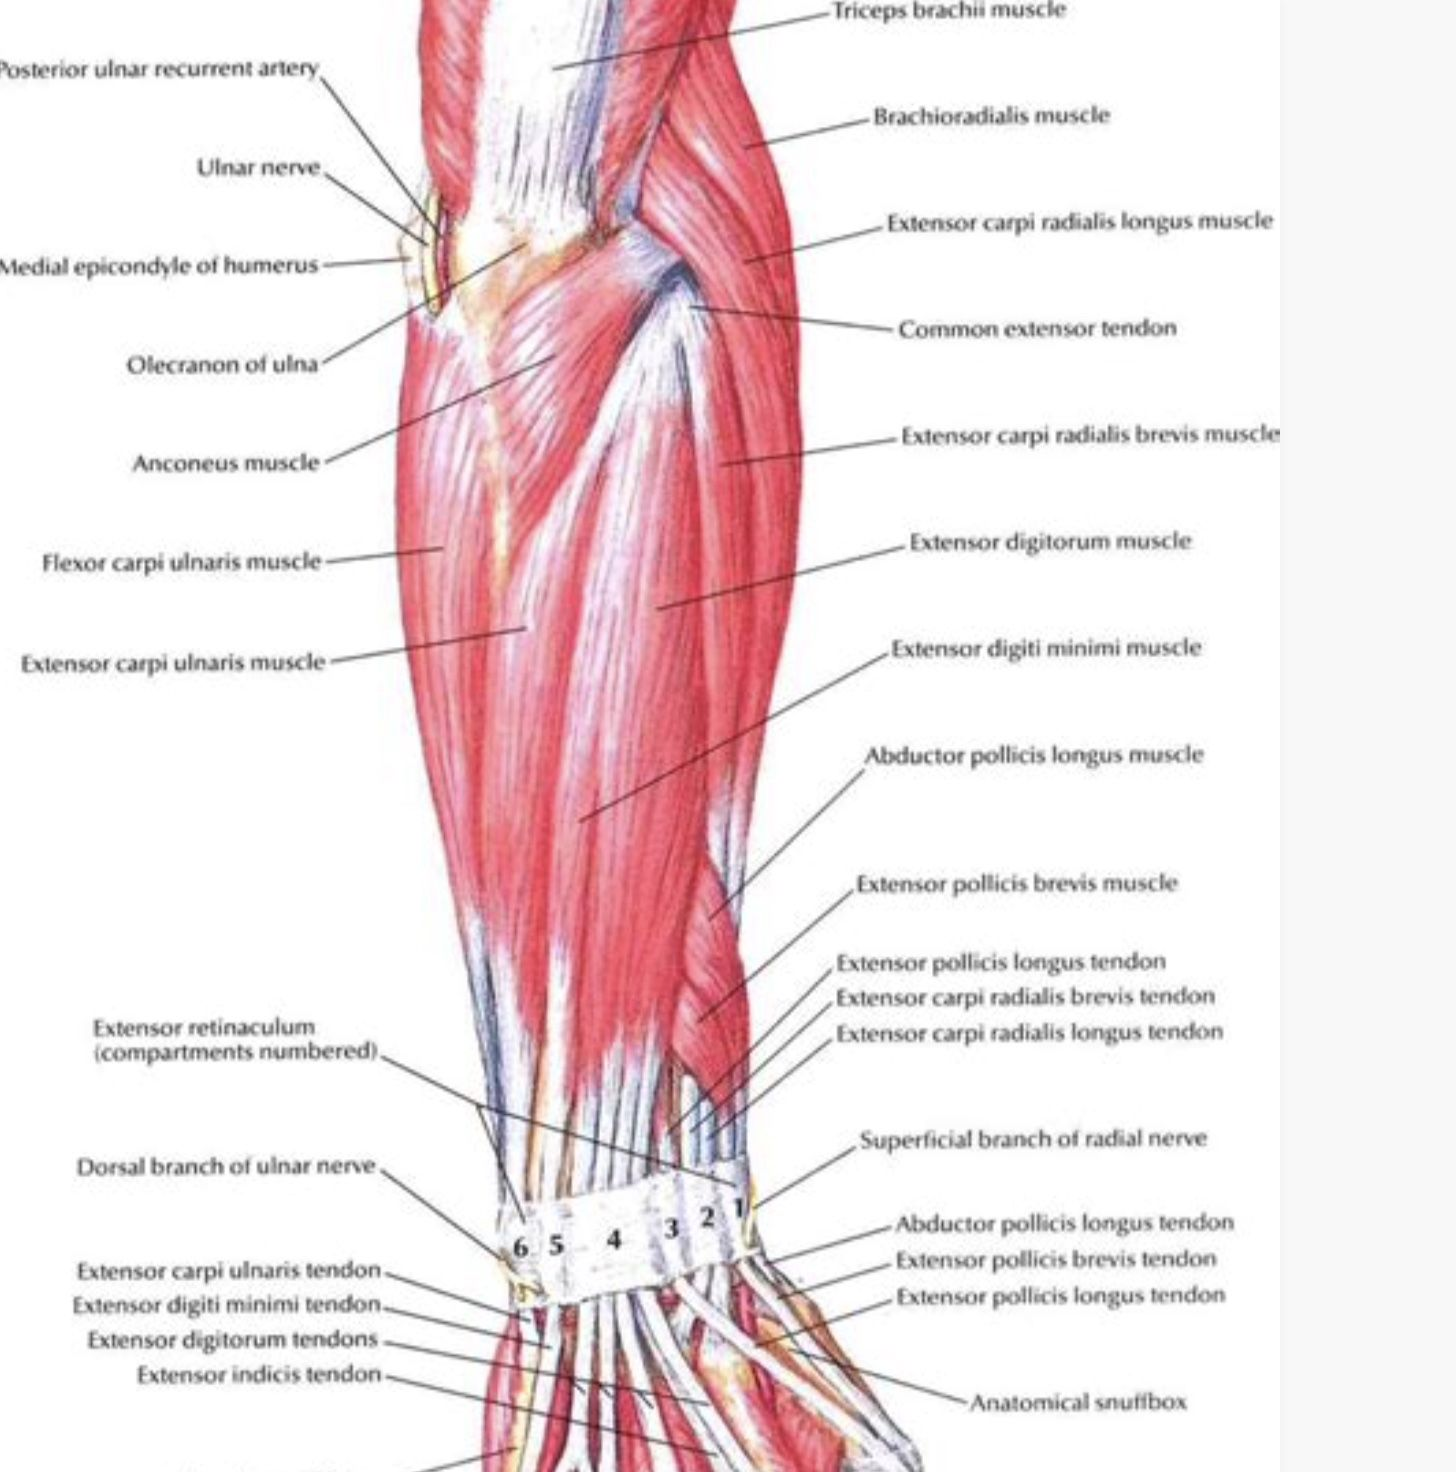 arm tendons diagram pin by lcrc on anatomy review in 2020  with images  extensor  pin by lcrc on anatomy review in 2020